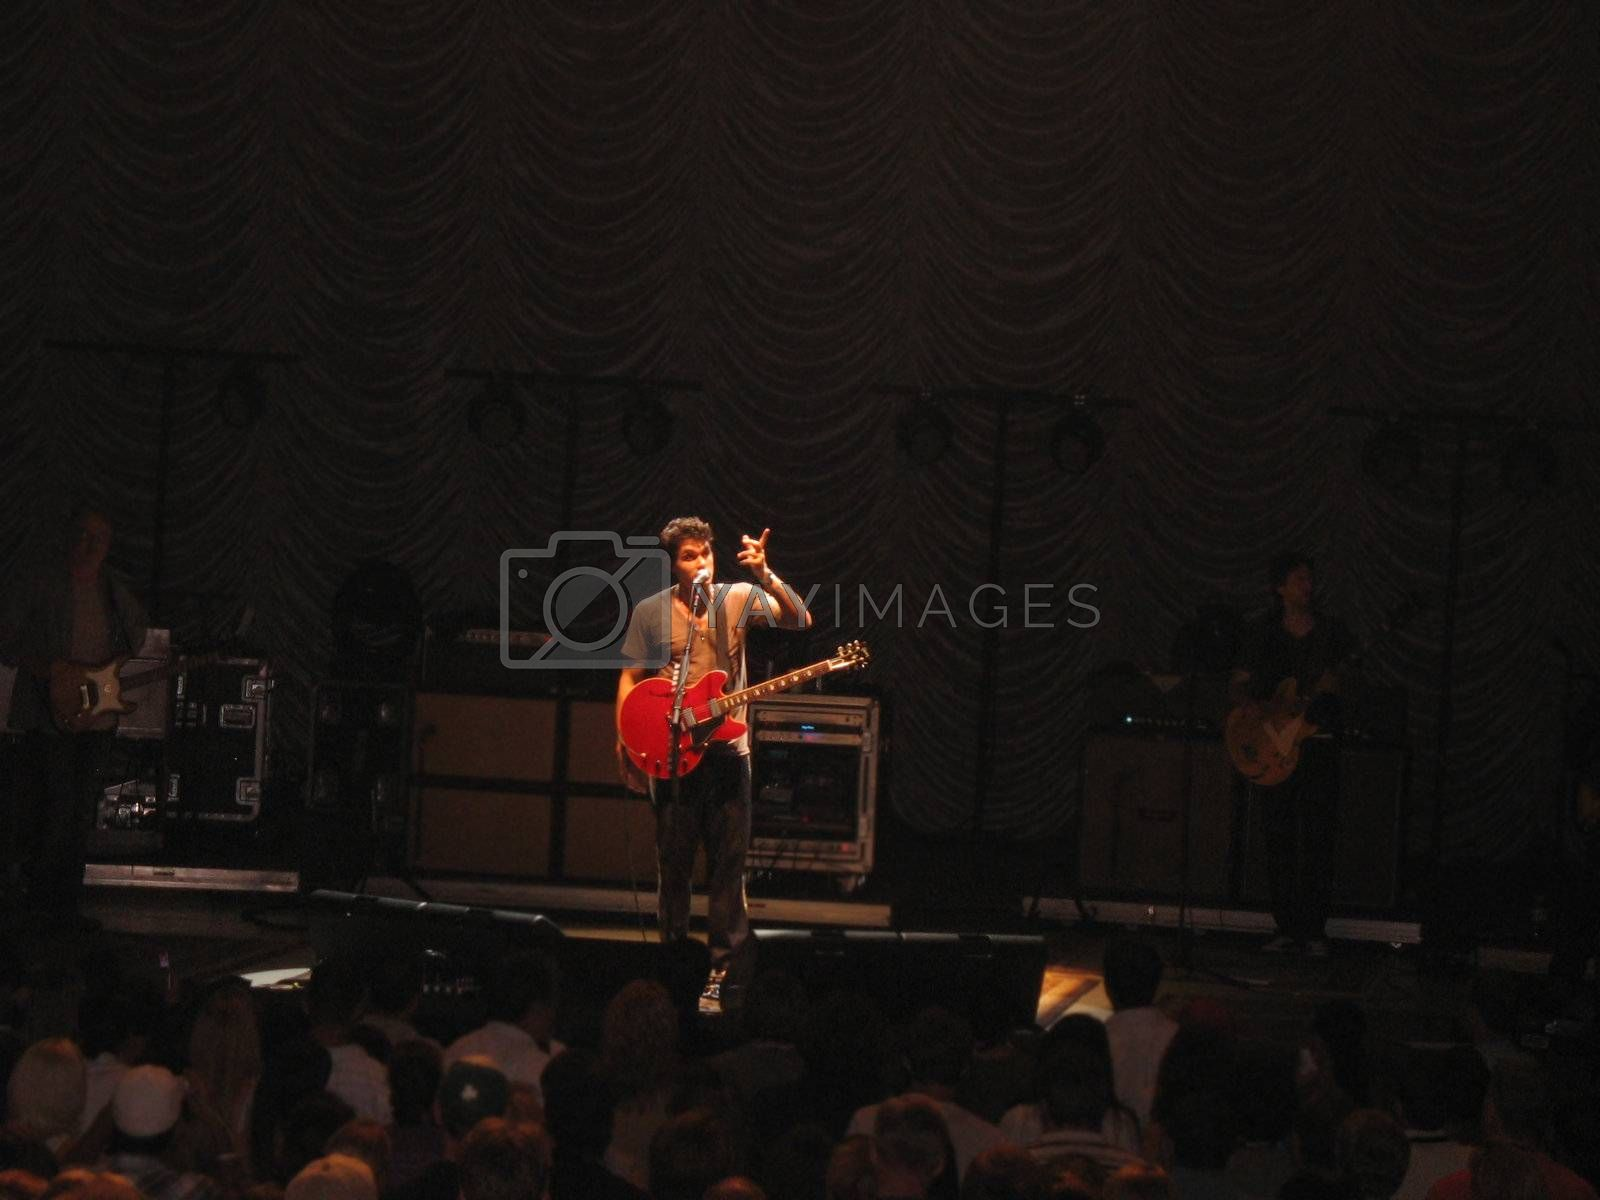 Singer slash song writer John Mayer performing in concert in Boston during the 2008 tour.